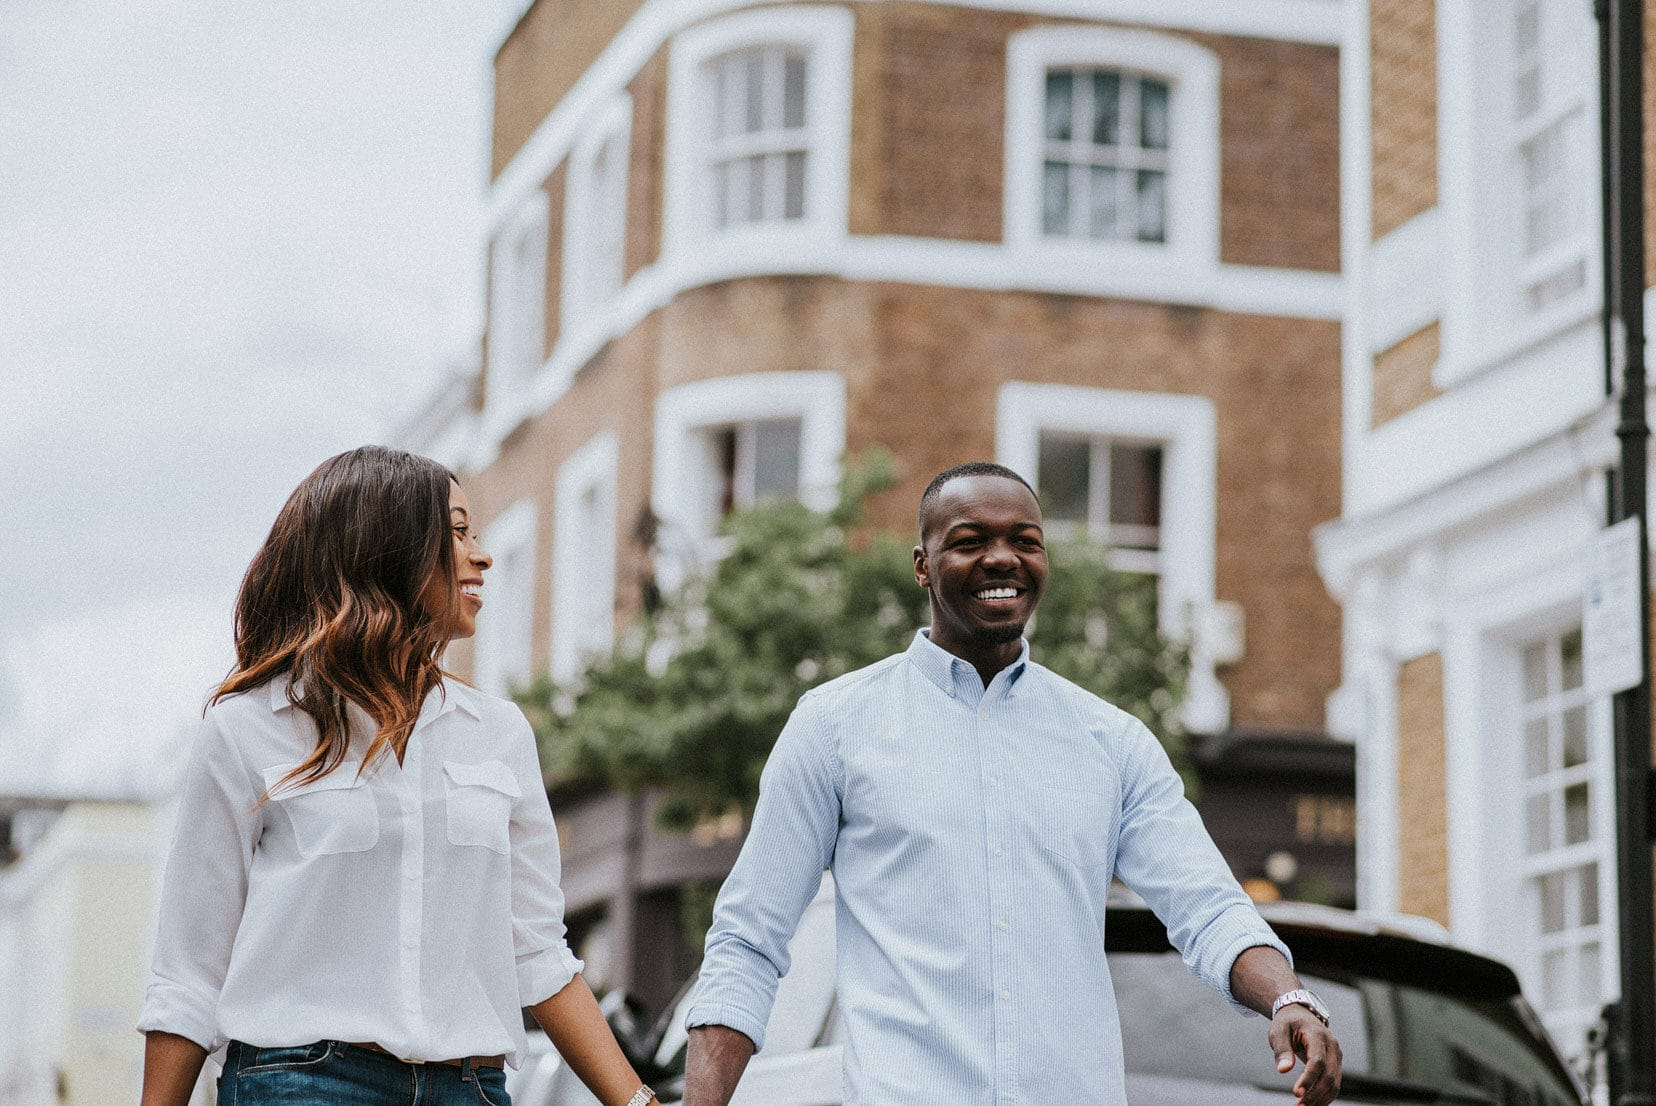 portobello-market-london-engagement-session (2)